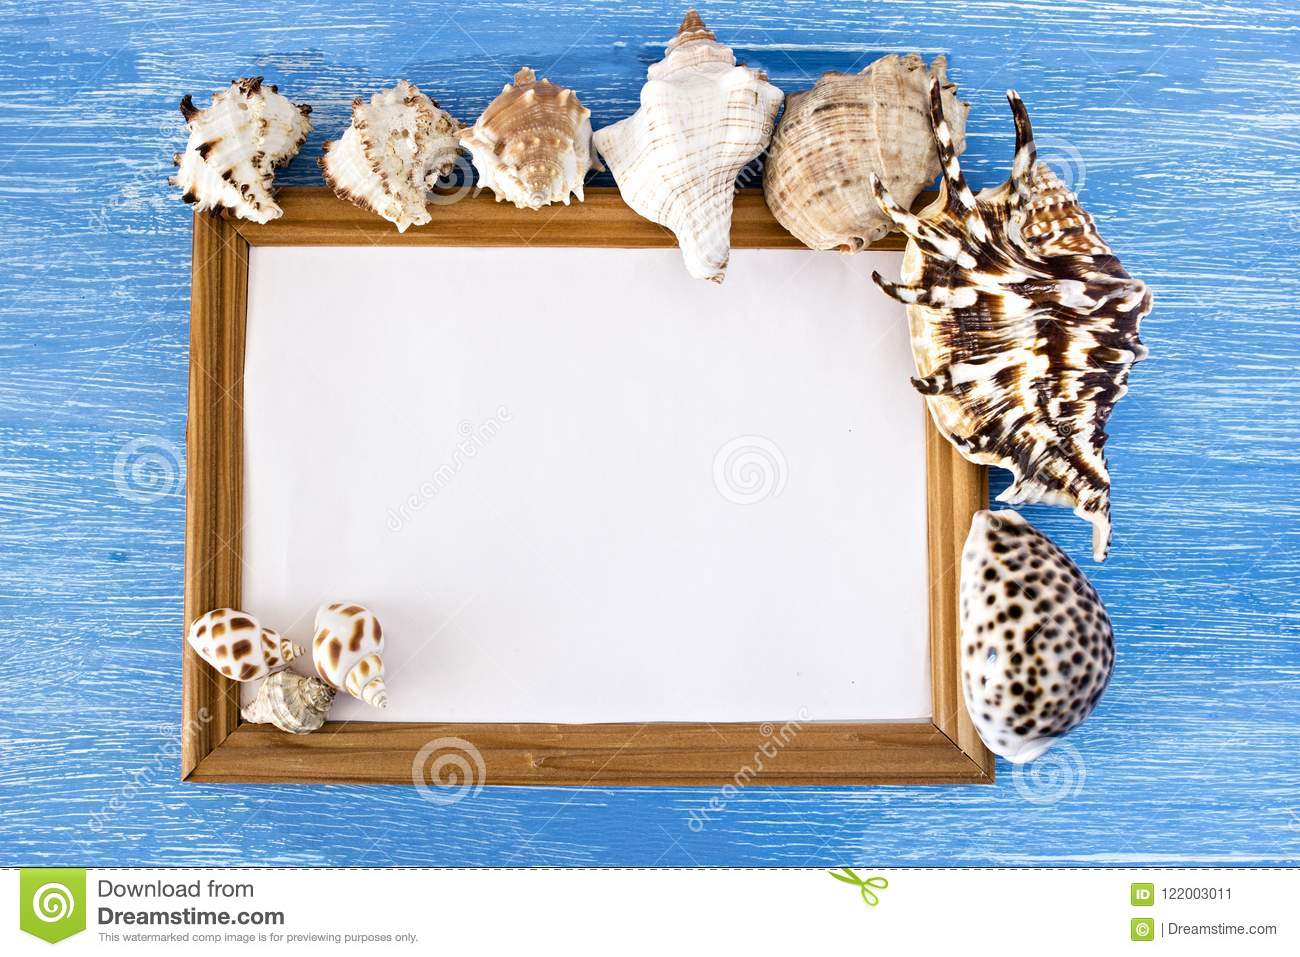 Frame and seashells on a blue wooden background